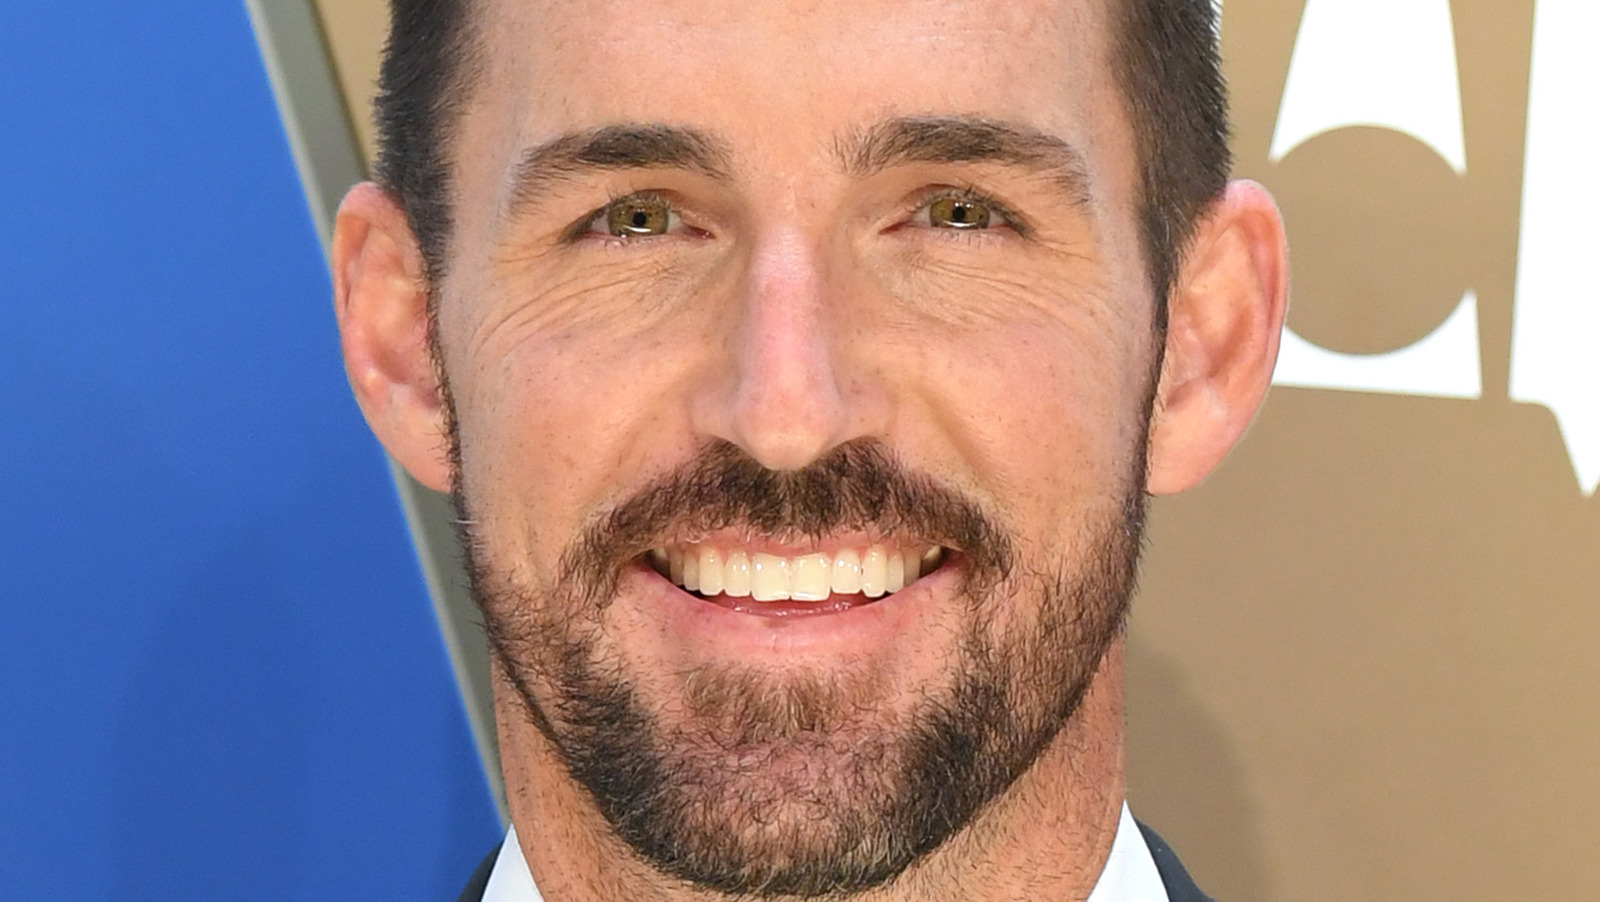 The Real Meaning Behind 'Made For You' By Jake Owen